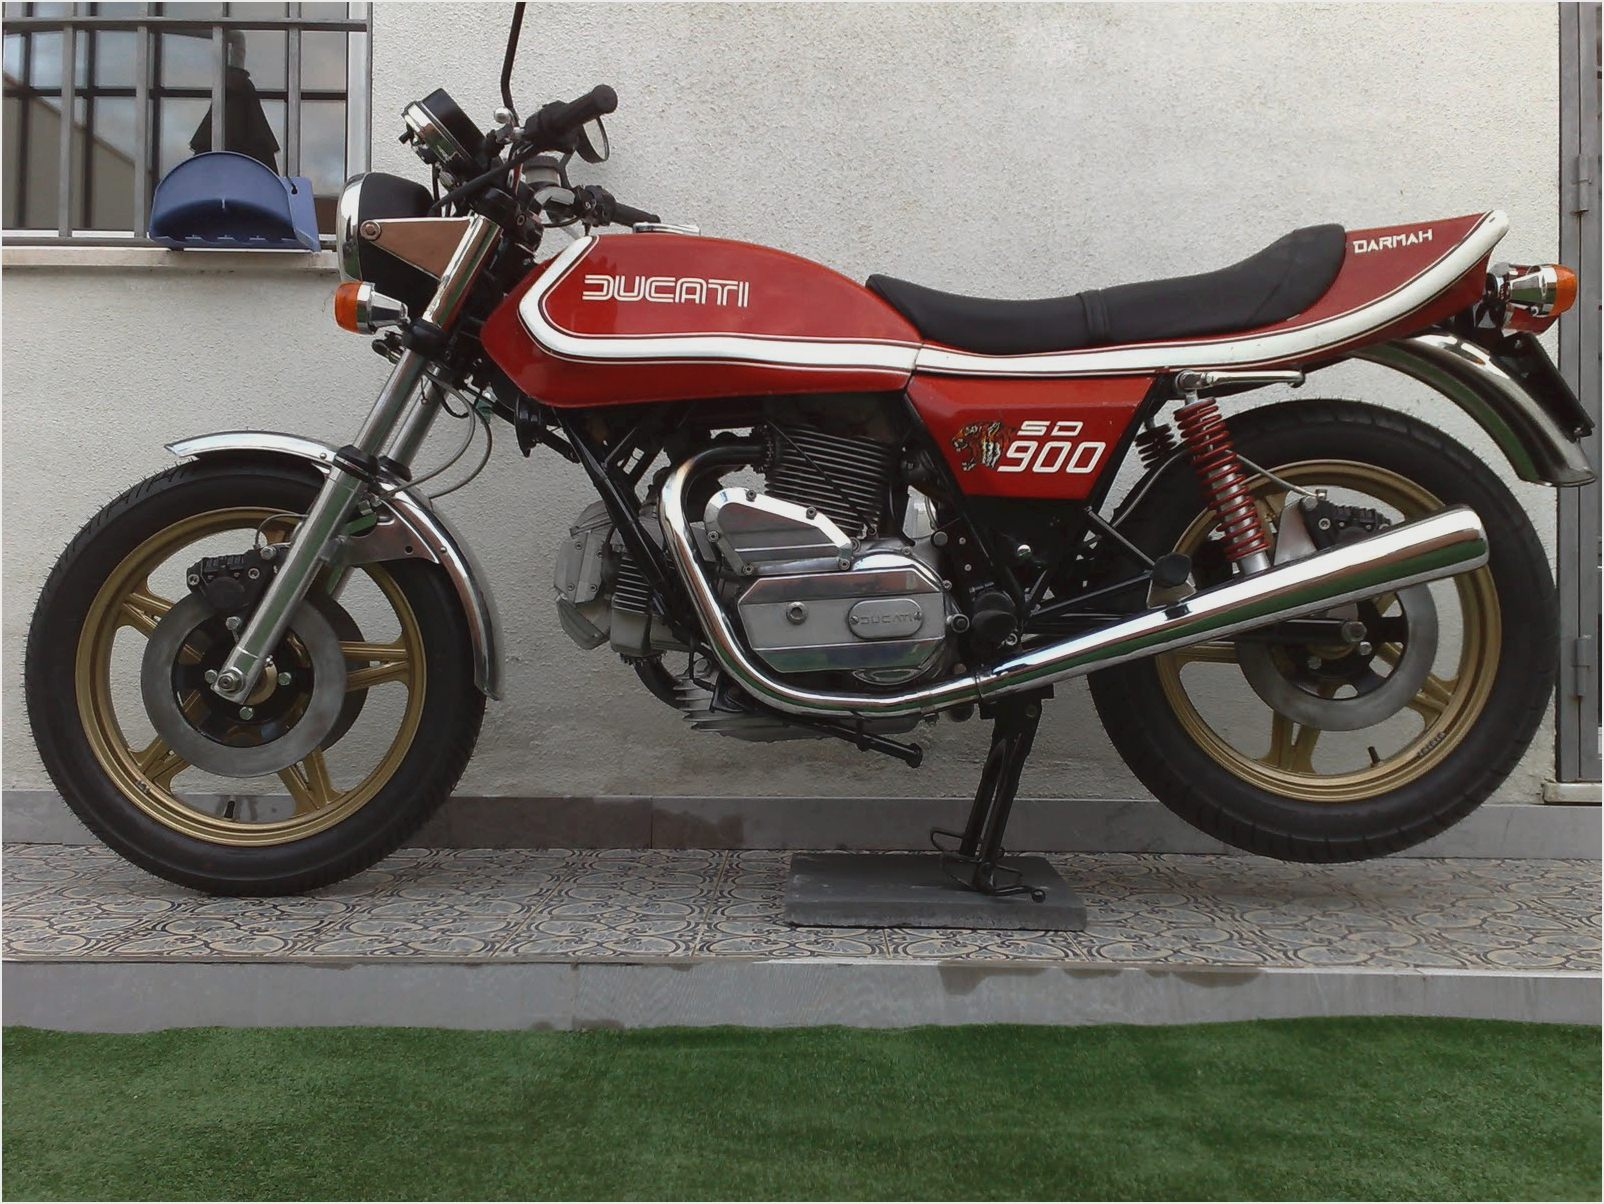 Ducati 900 SD Darmah 1978 wallpapers #10402